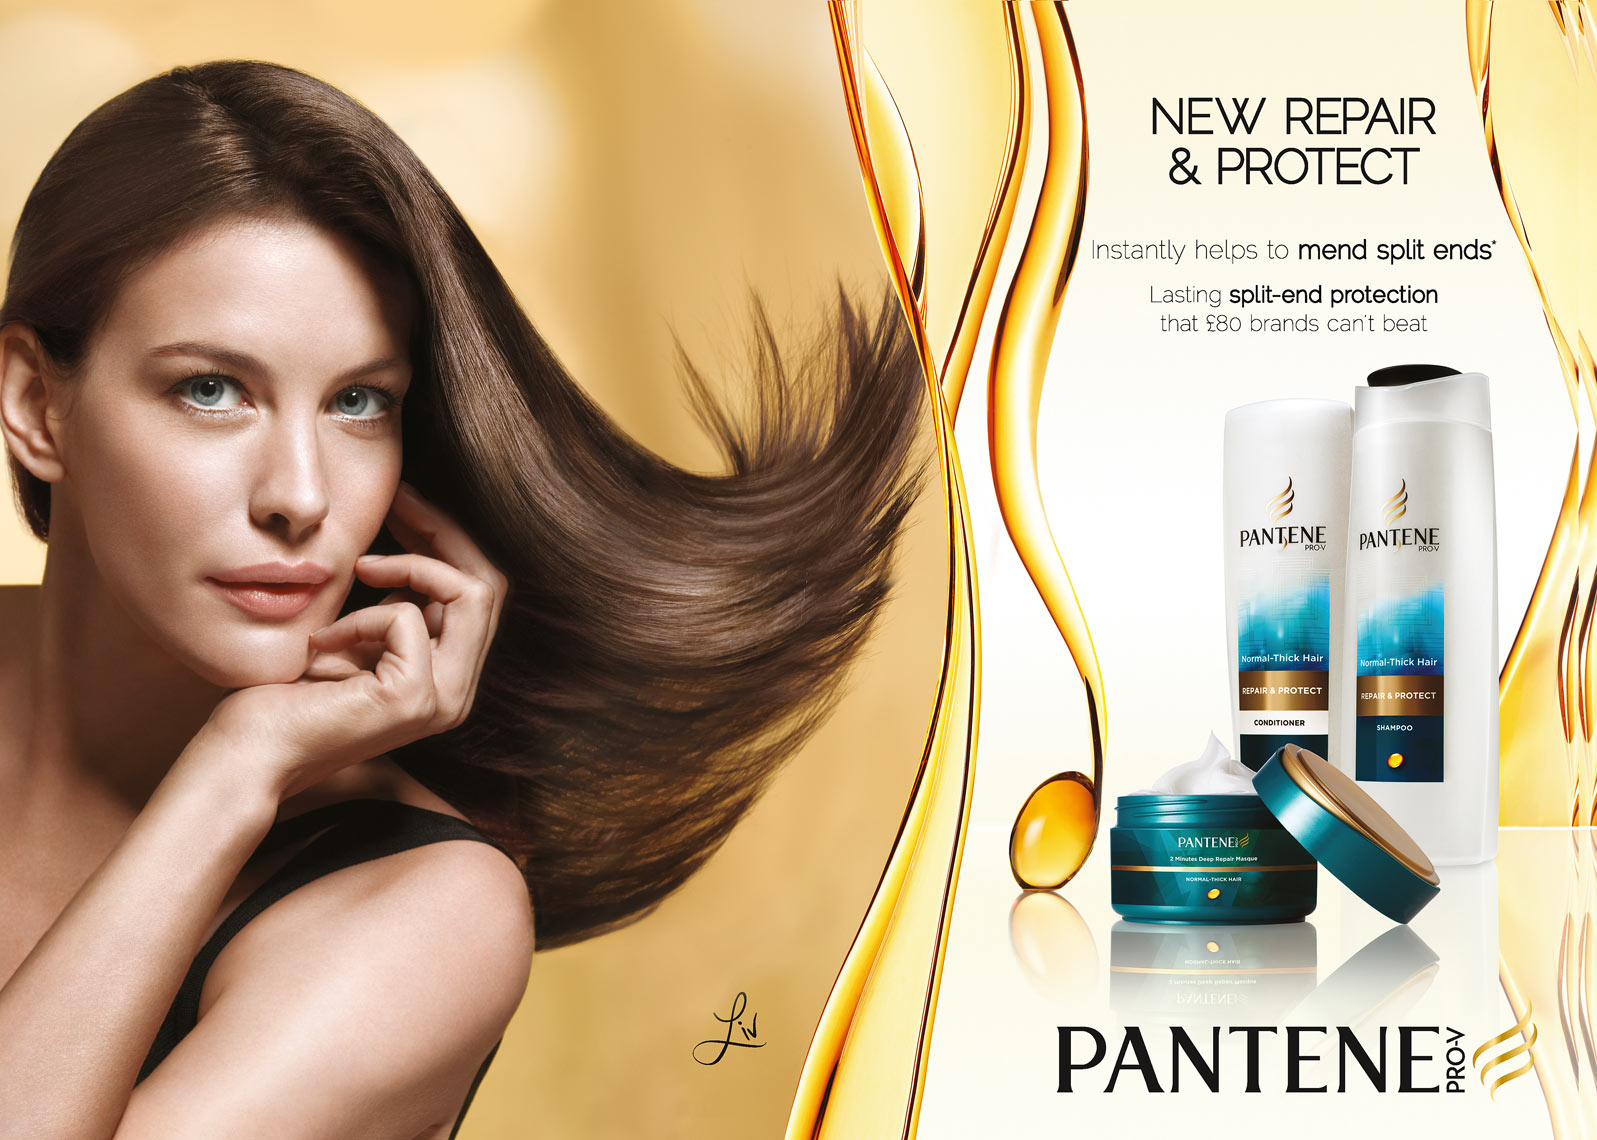 UK-Client-Master---Pantene-Iris-W1---Repair--Protect-DPS-